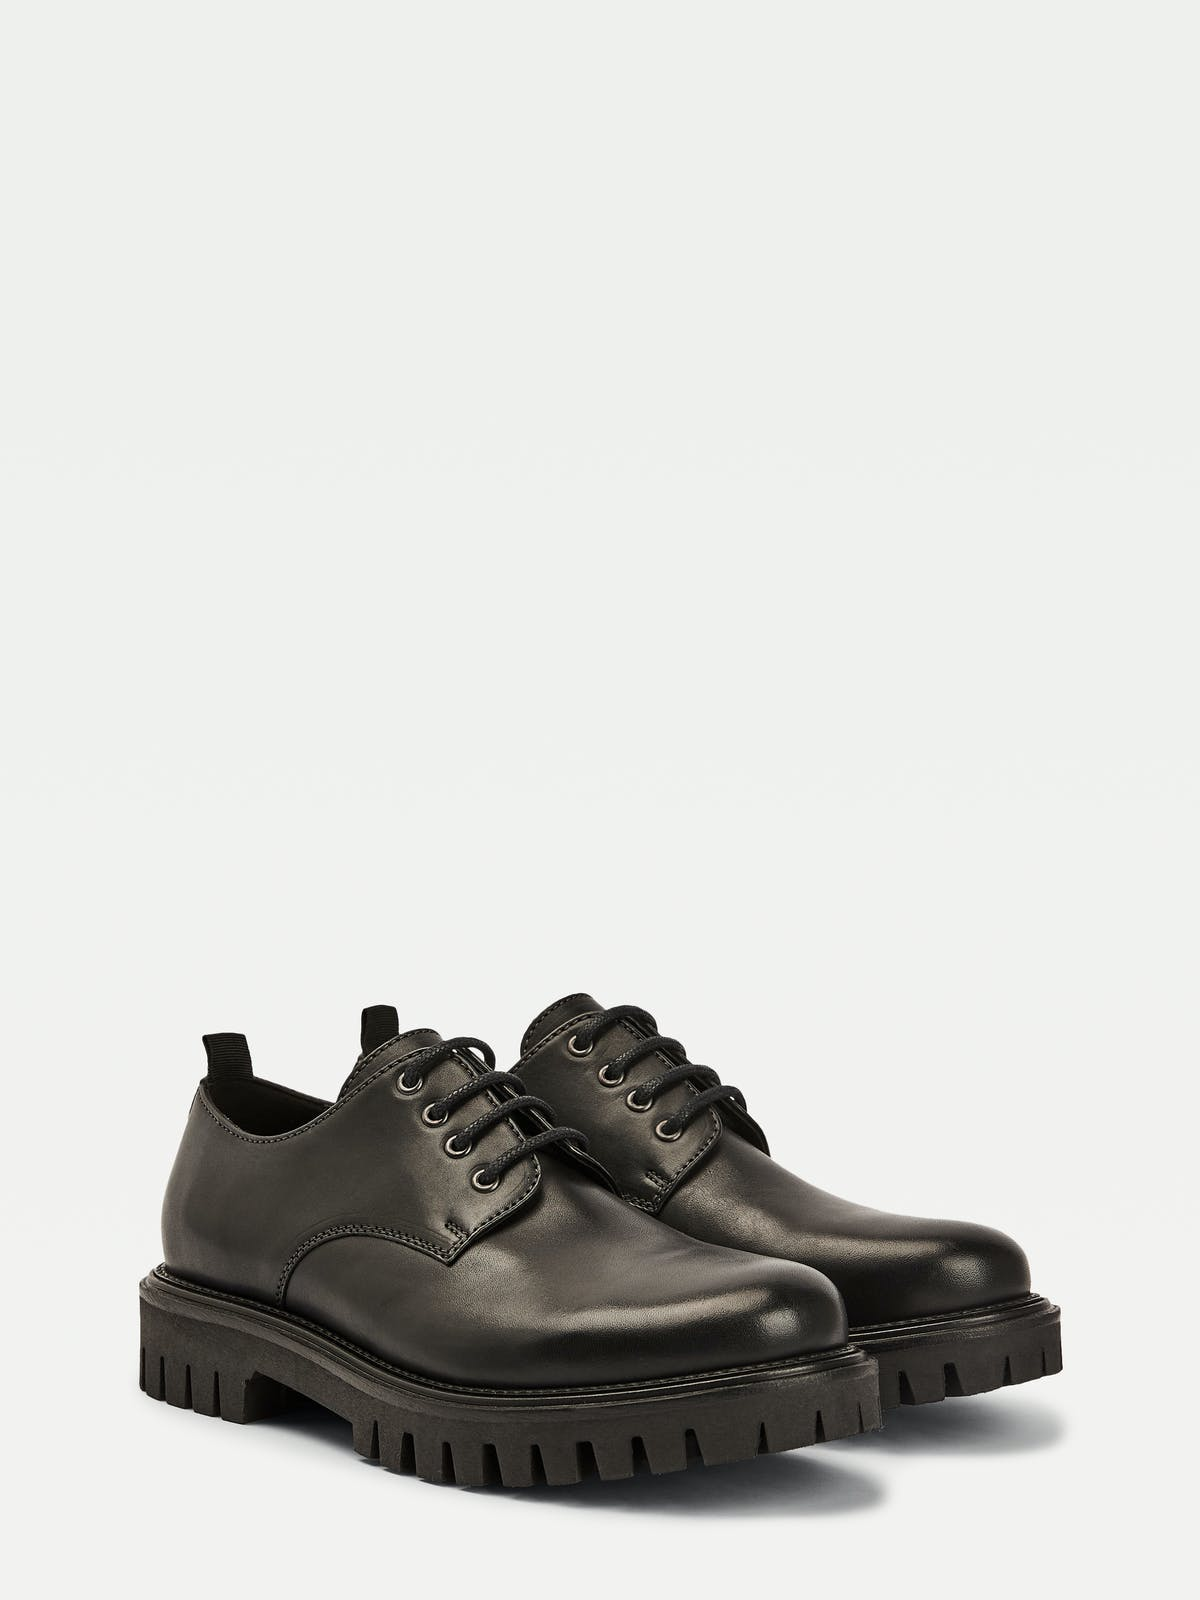 Chunky Leather Dress Shoes